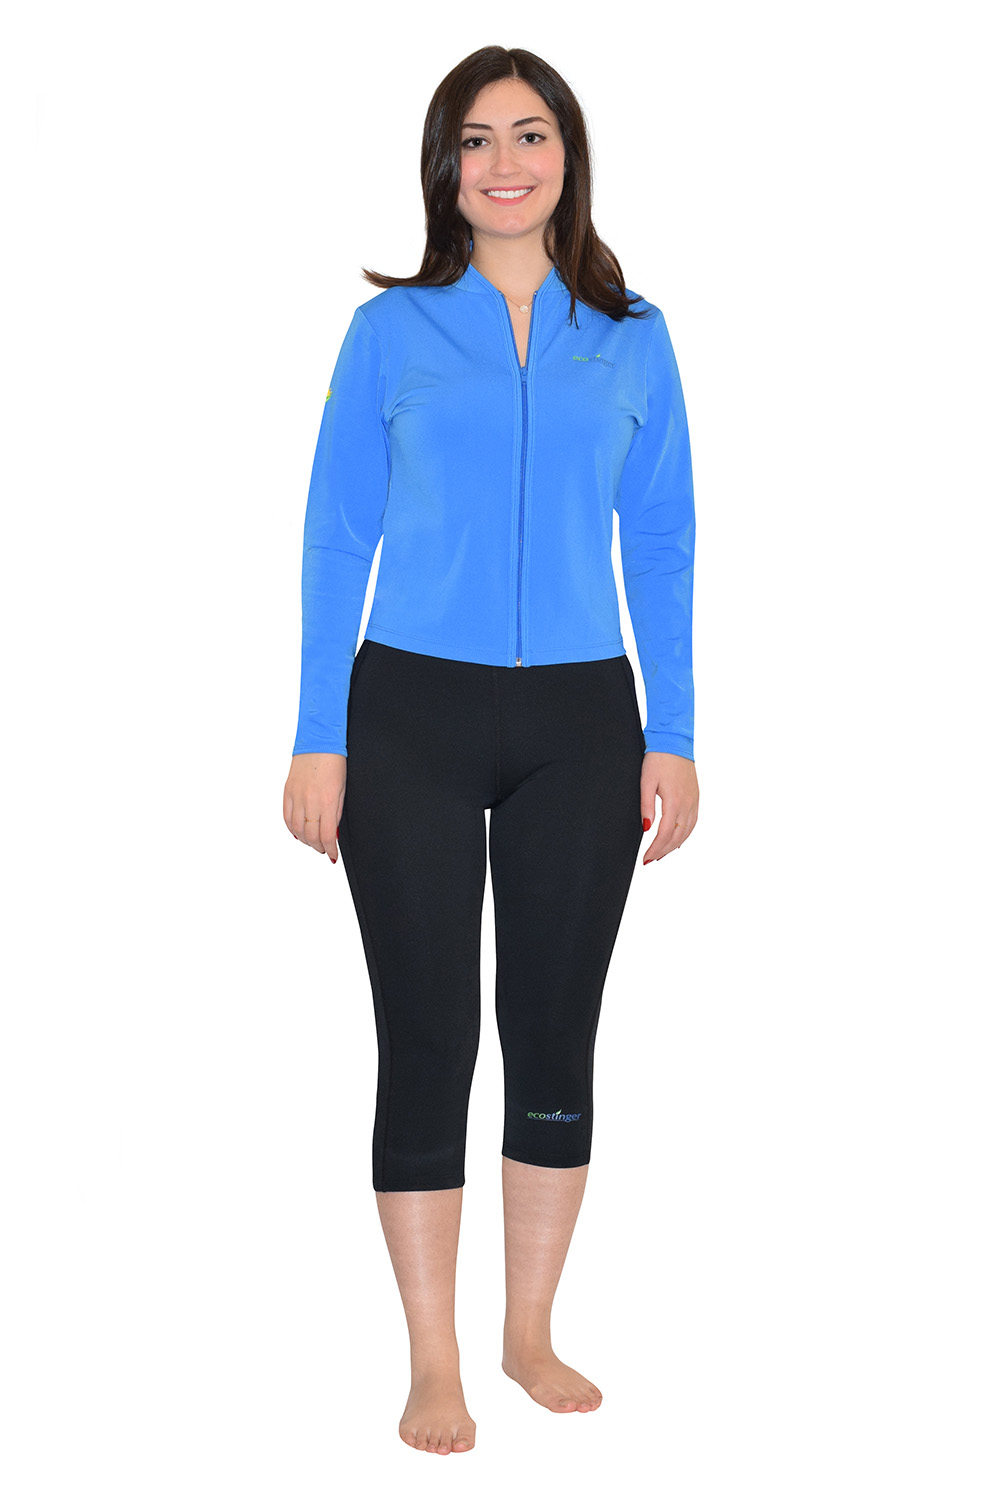 women beach sun clothing jacket and leggings